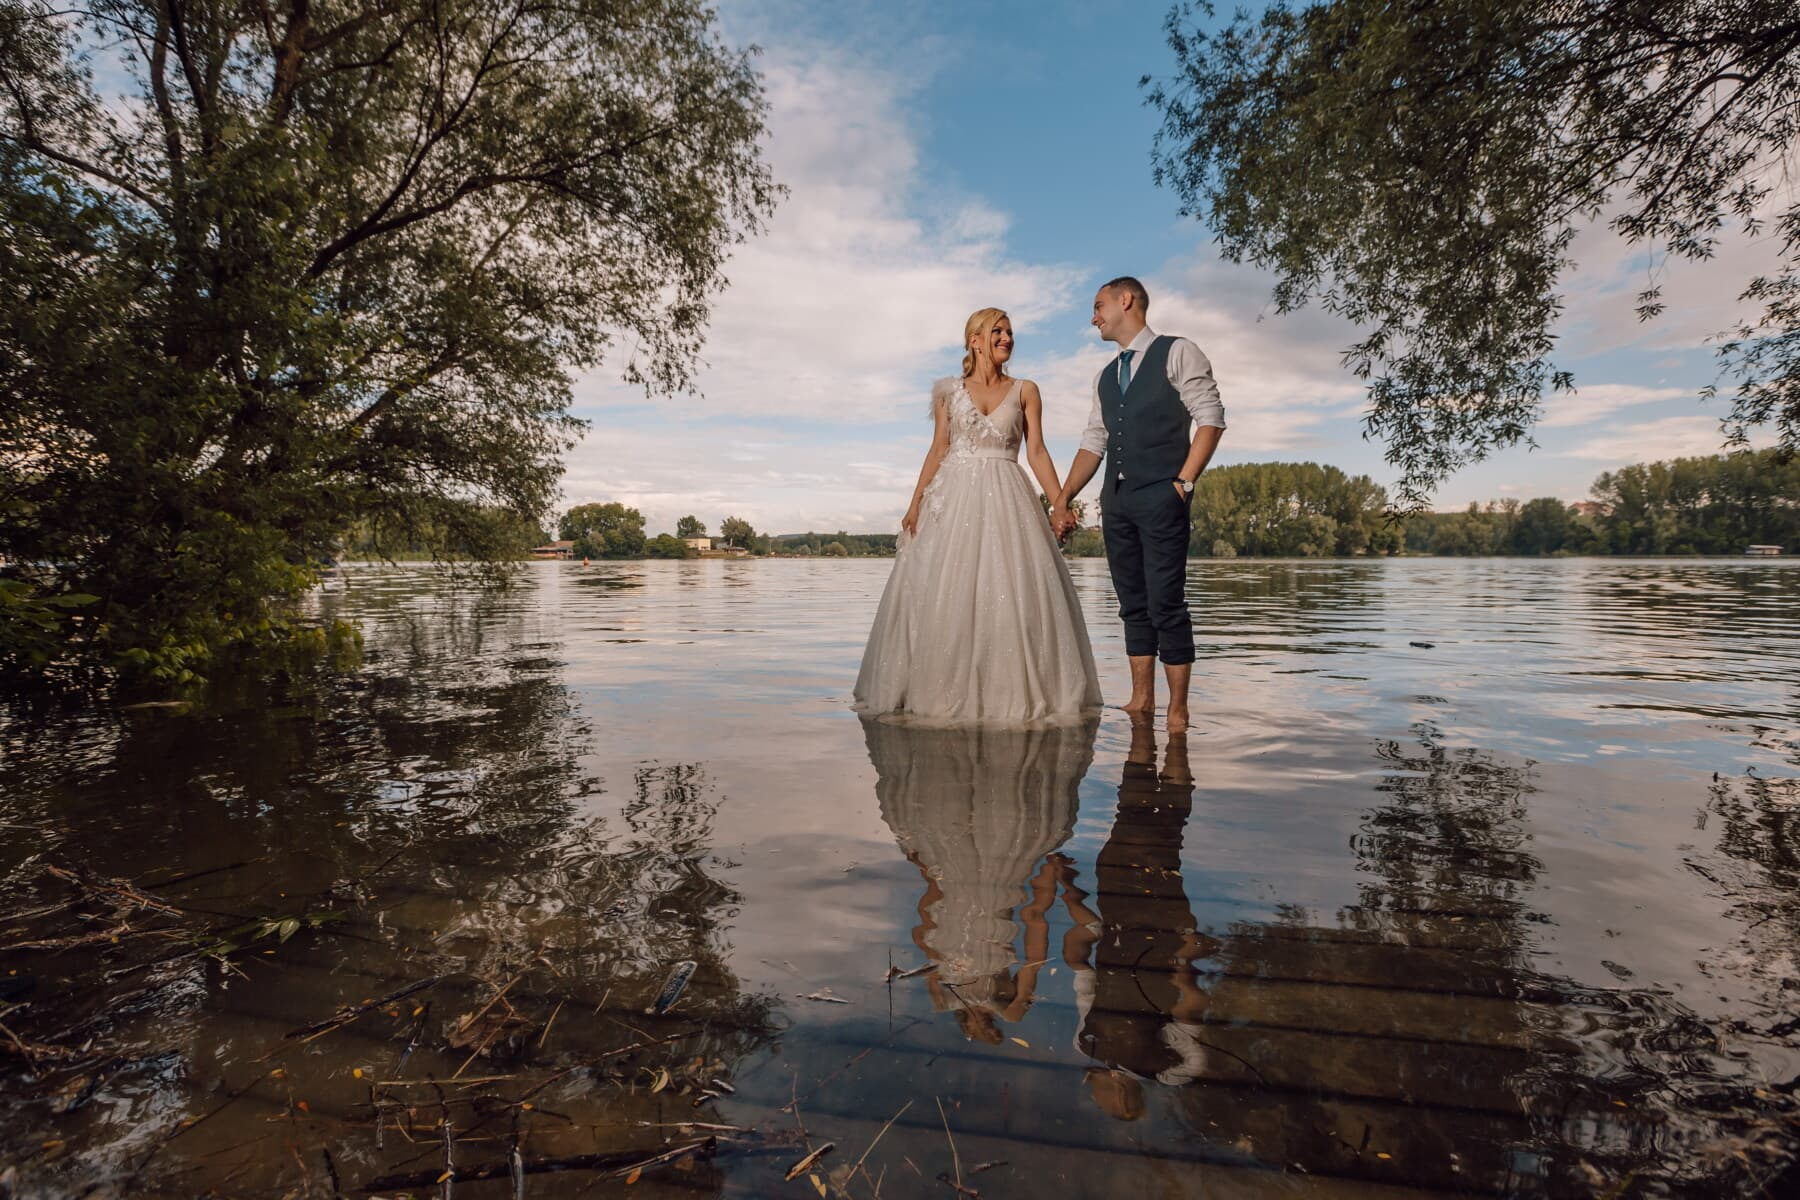 just married, standing, lake, barefoot, passion, love date, affection, smiling, bride, girl